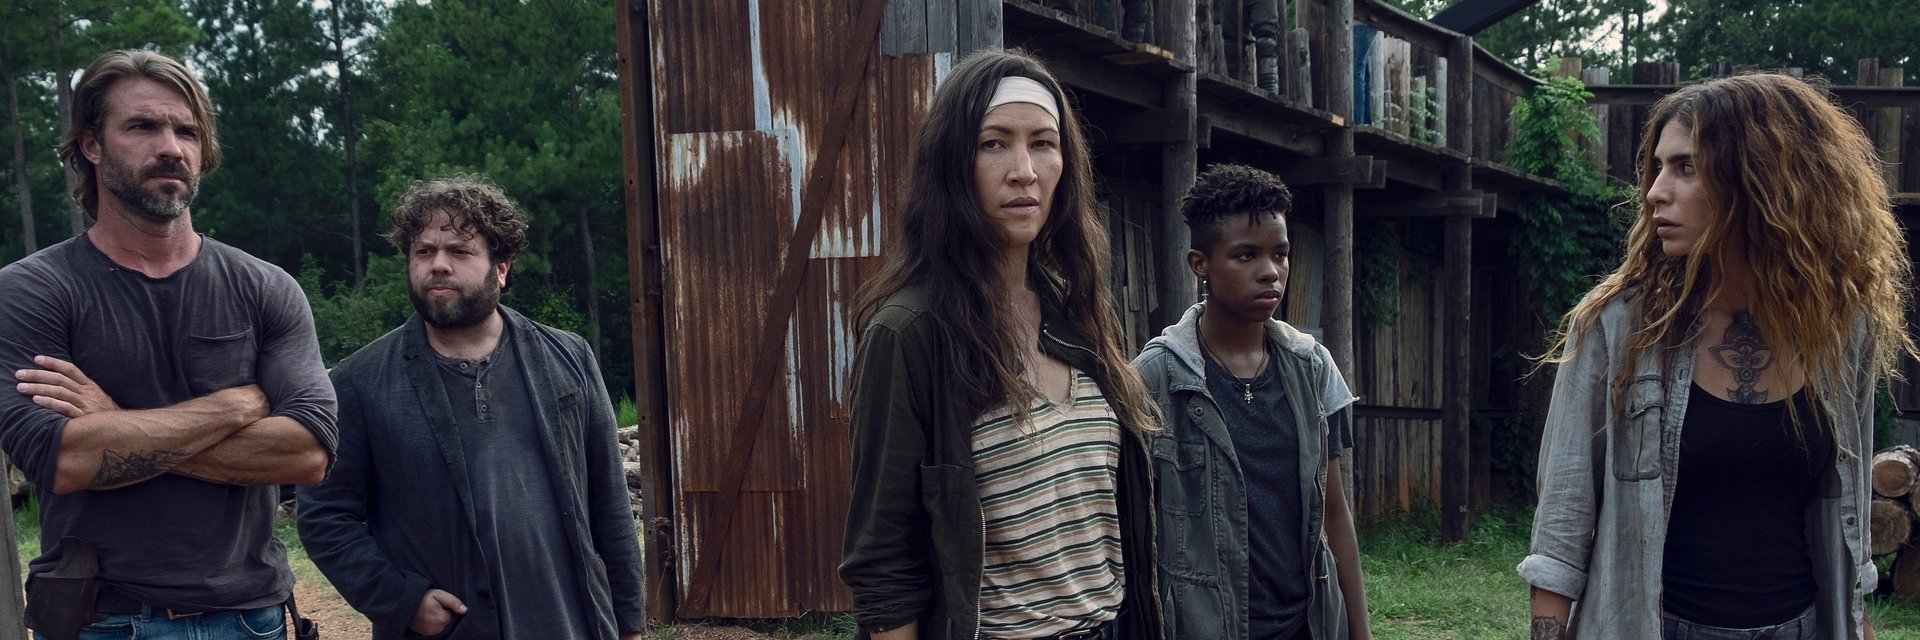 ANTESTREIA EXCLUSIVA DE 'THE WALKING DEAD' NO FOX+